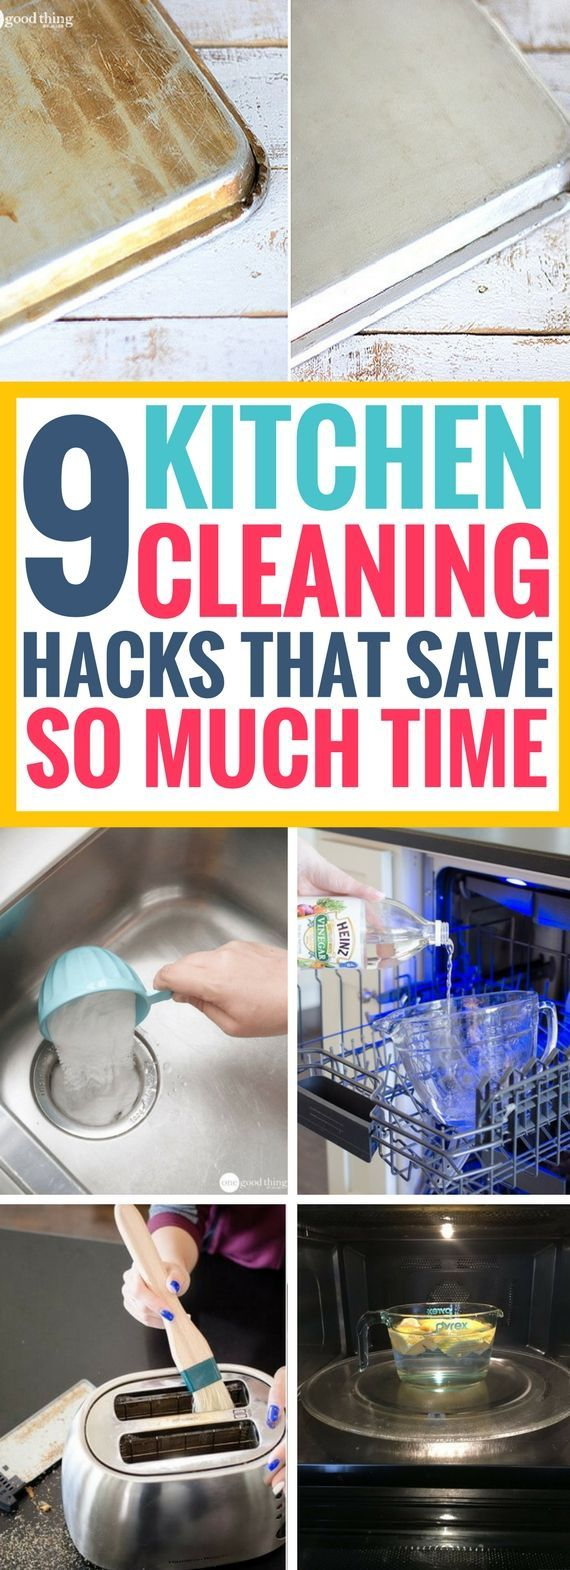 These Kitchen Cleaning Hacks are the BEST! Really great ways to clean appliances in your kitchen without much stress and so fast too! Totally in love with these cleaning hacks. Definitely saving for later!